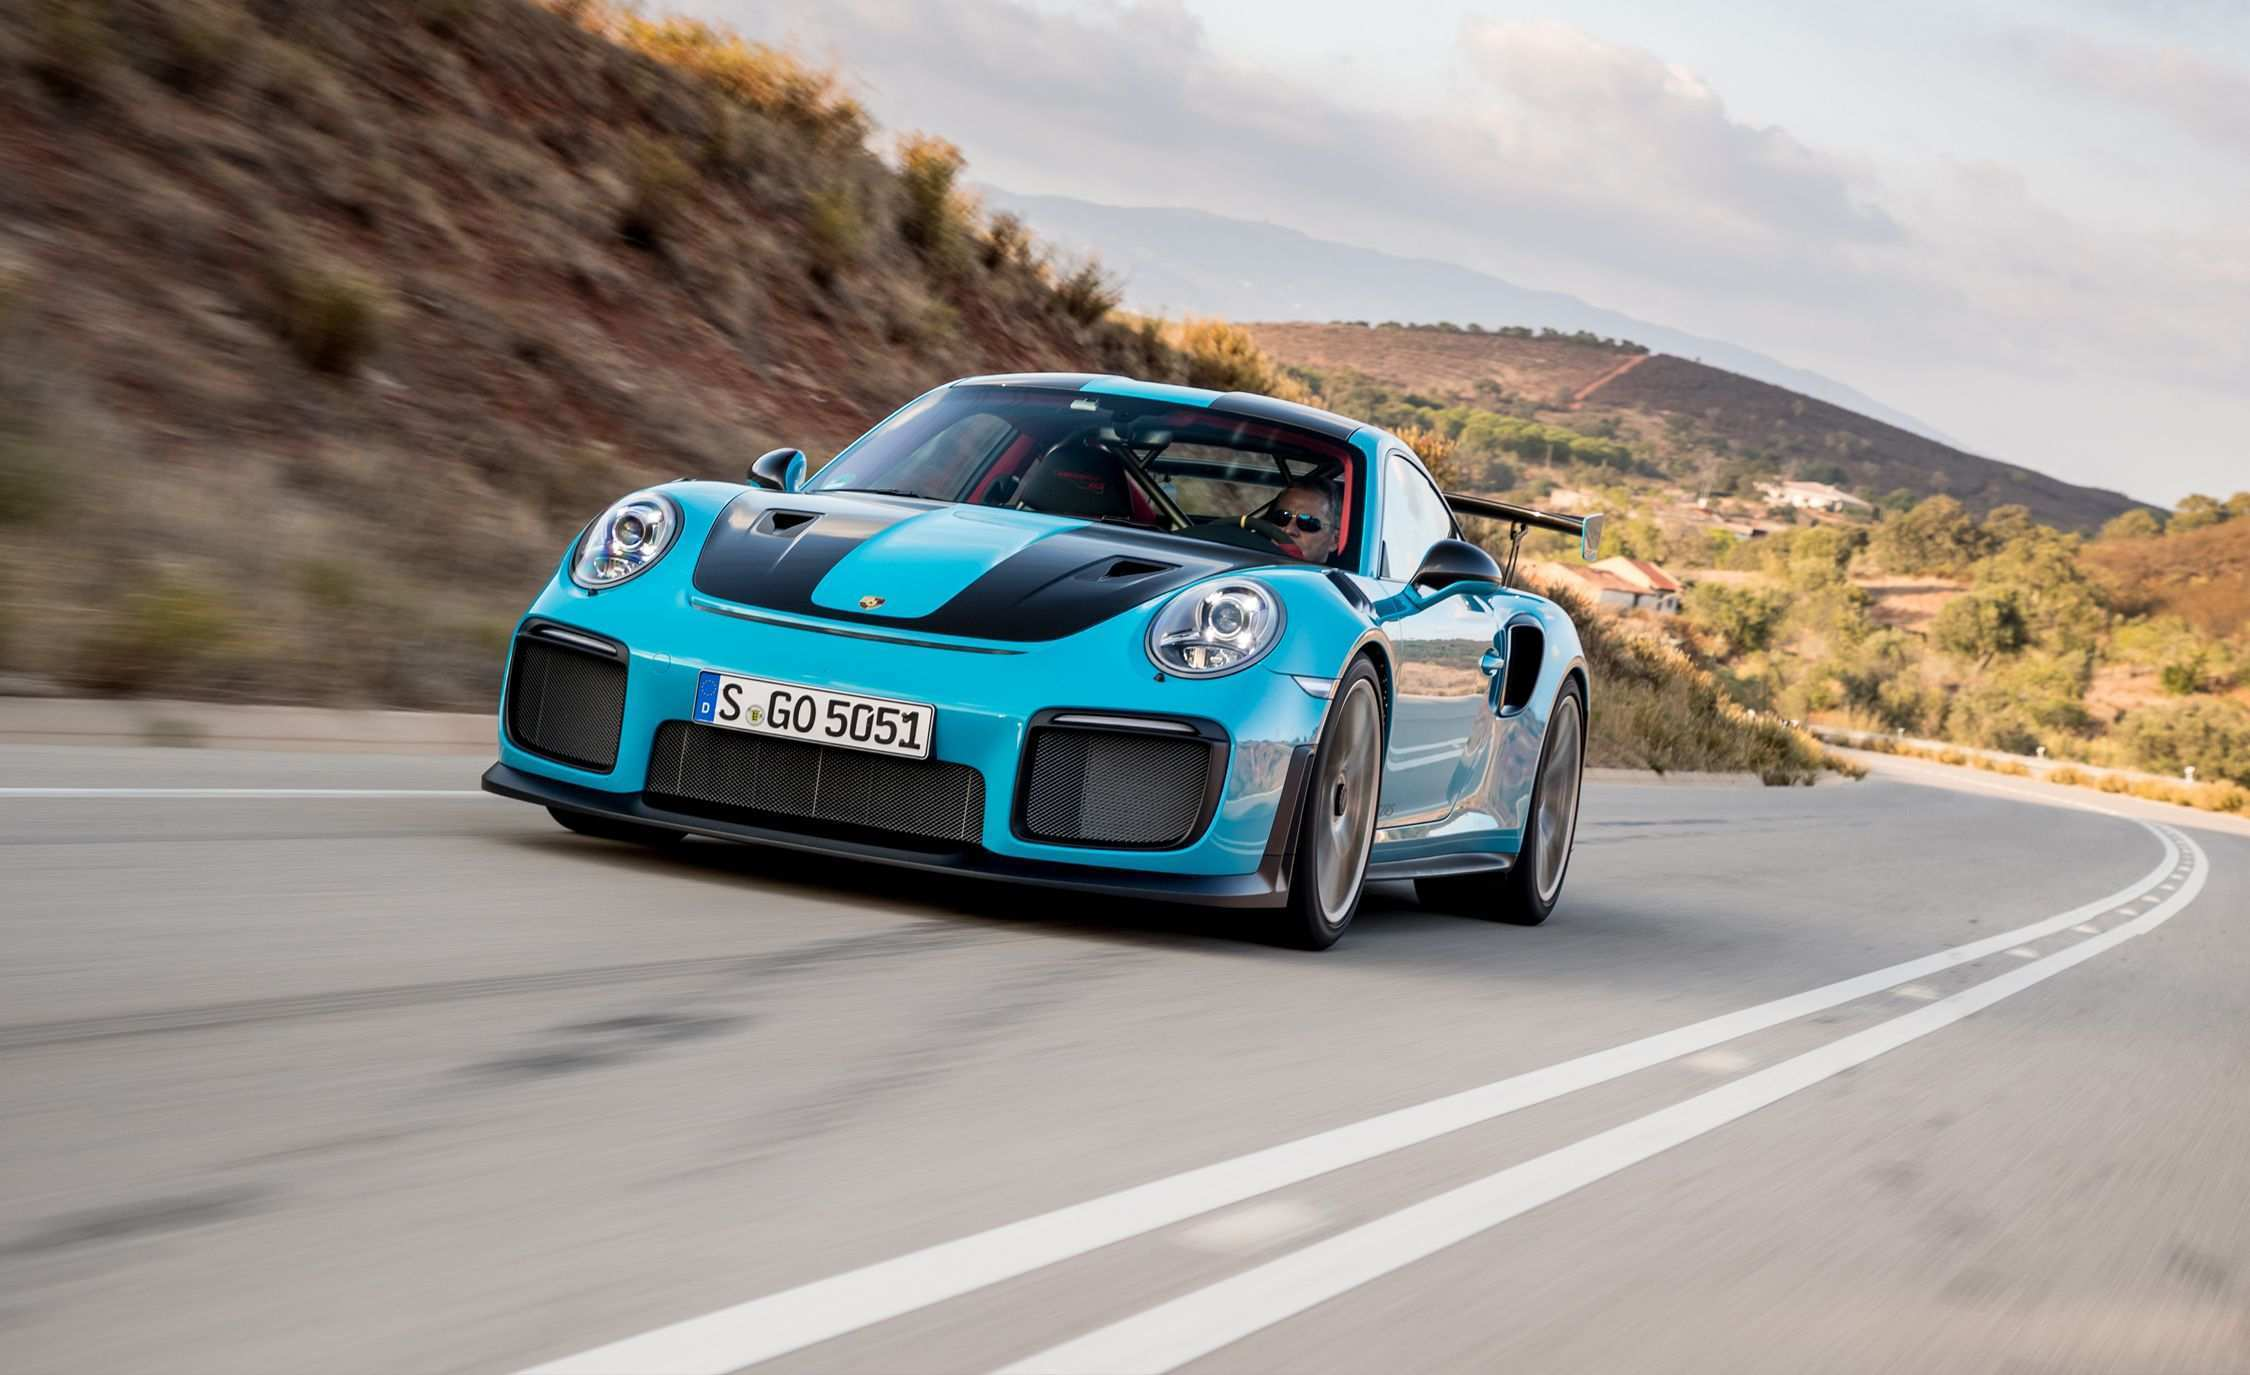 53 Great 2019 Porsche Gt2 Rs Release Date with 2019 Porsche Gt2 Rs